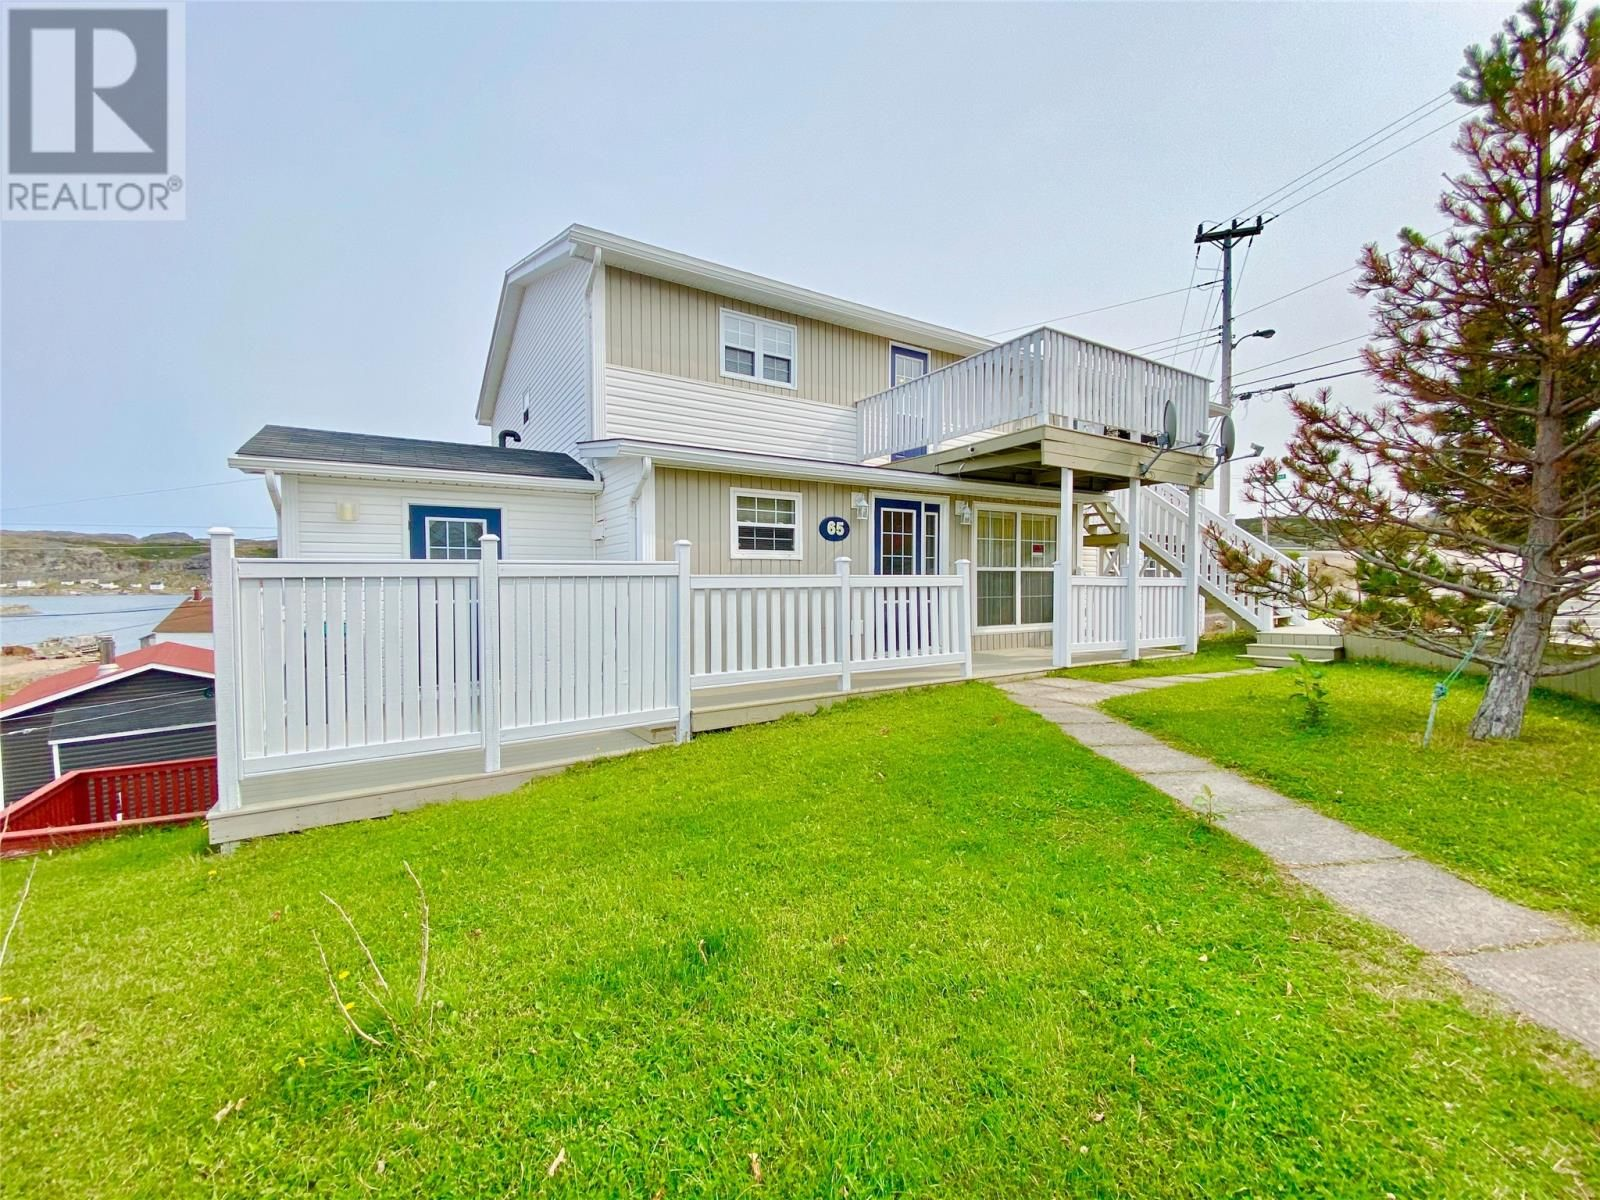 Main Photo: 63-65 Main Street in Fogo: House for sale : MLS®# 1221886